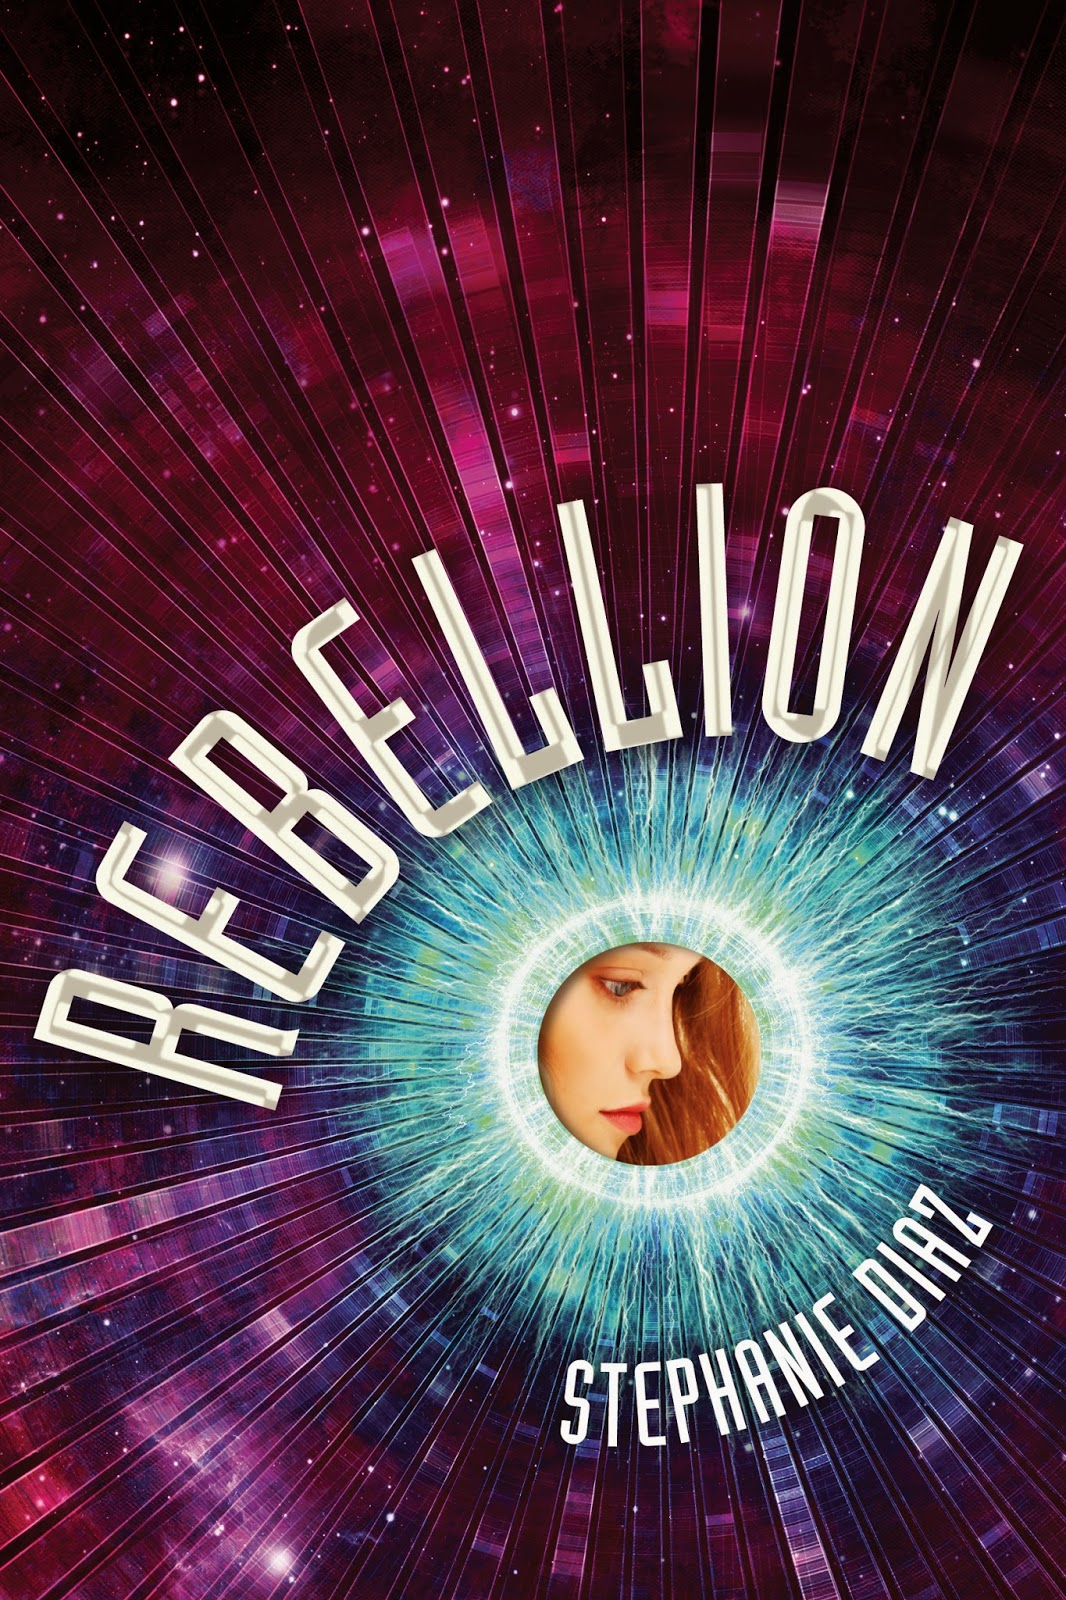 http://www.amazon.com/Rebellion-Stephanie-Diaz/dp/1250041252/